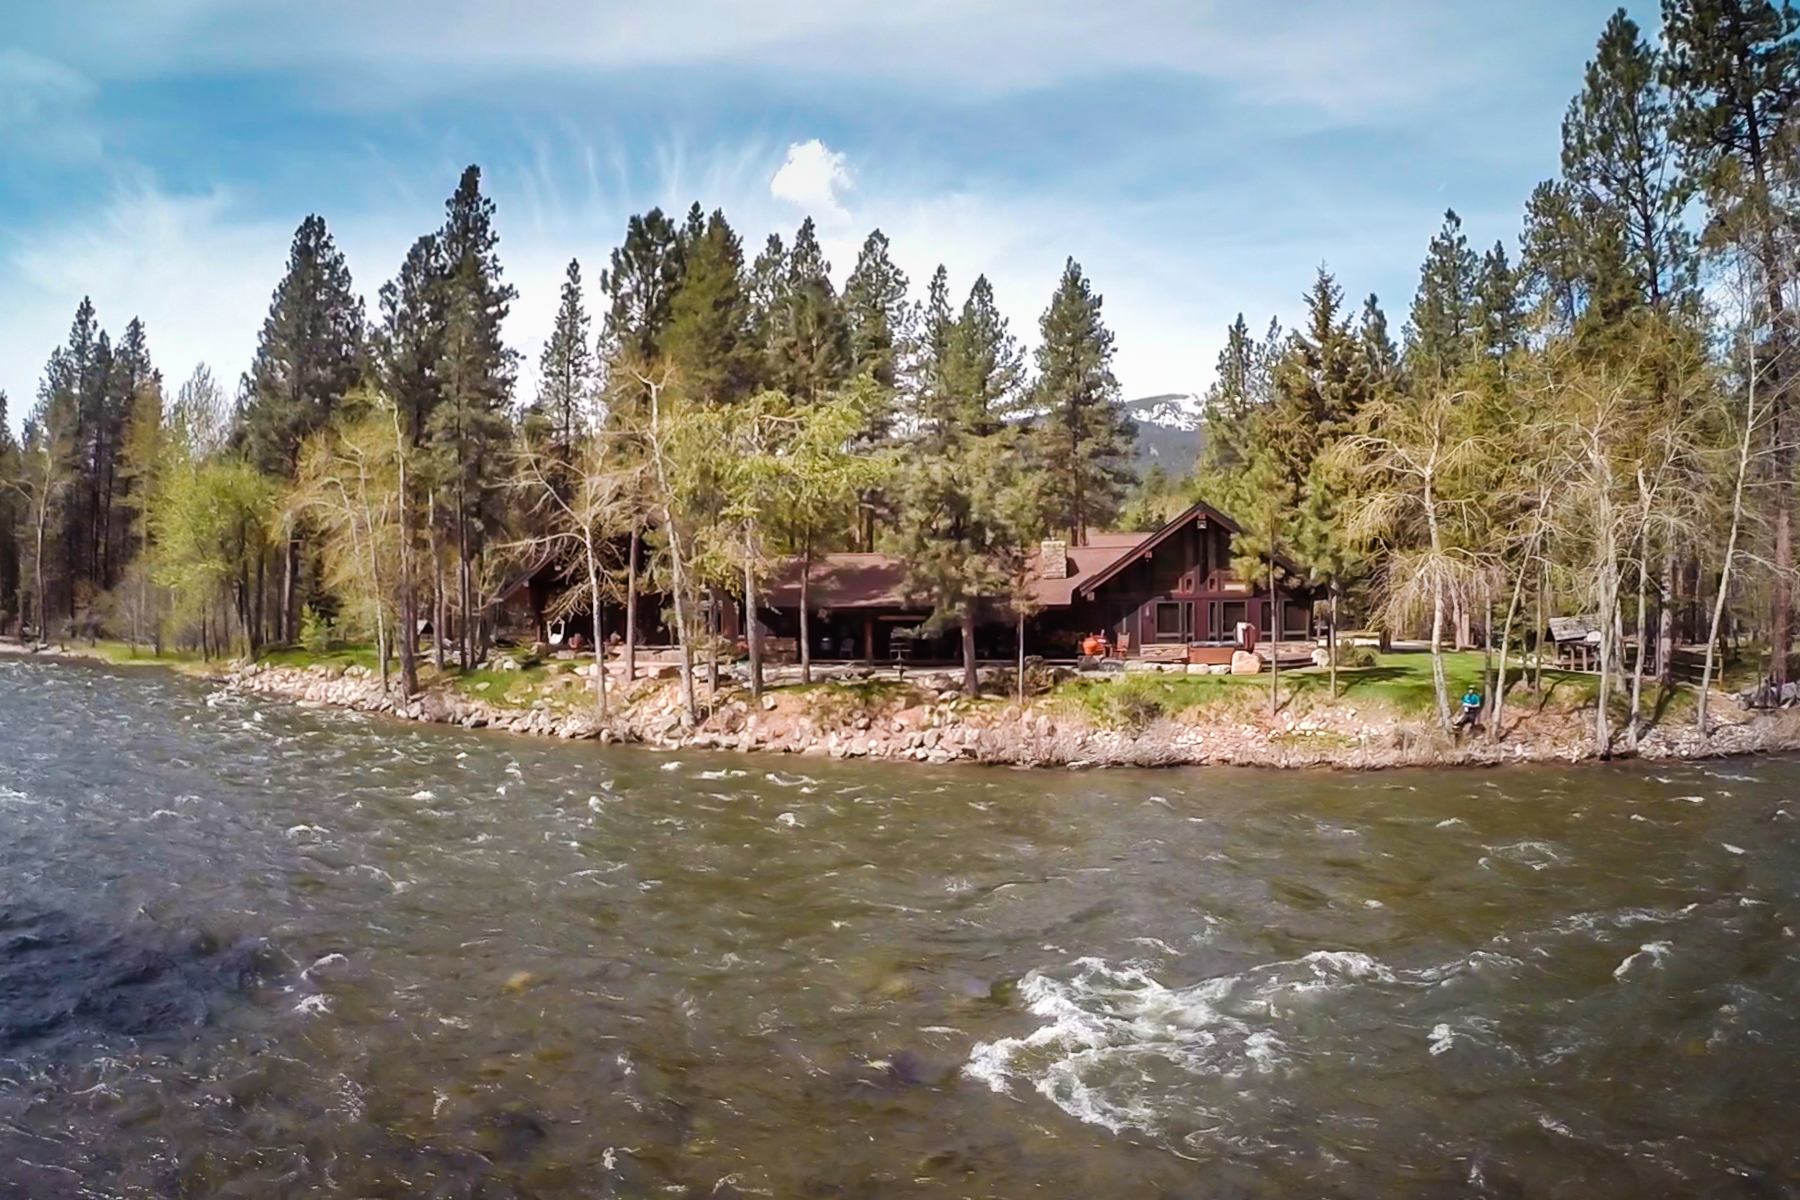 Single Family Home for Sale at 5492 West Fork Road 5492 West Fork Rd Darby, Montana, 59829 United States